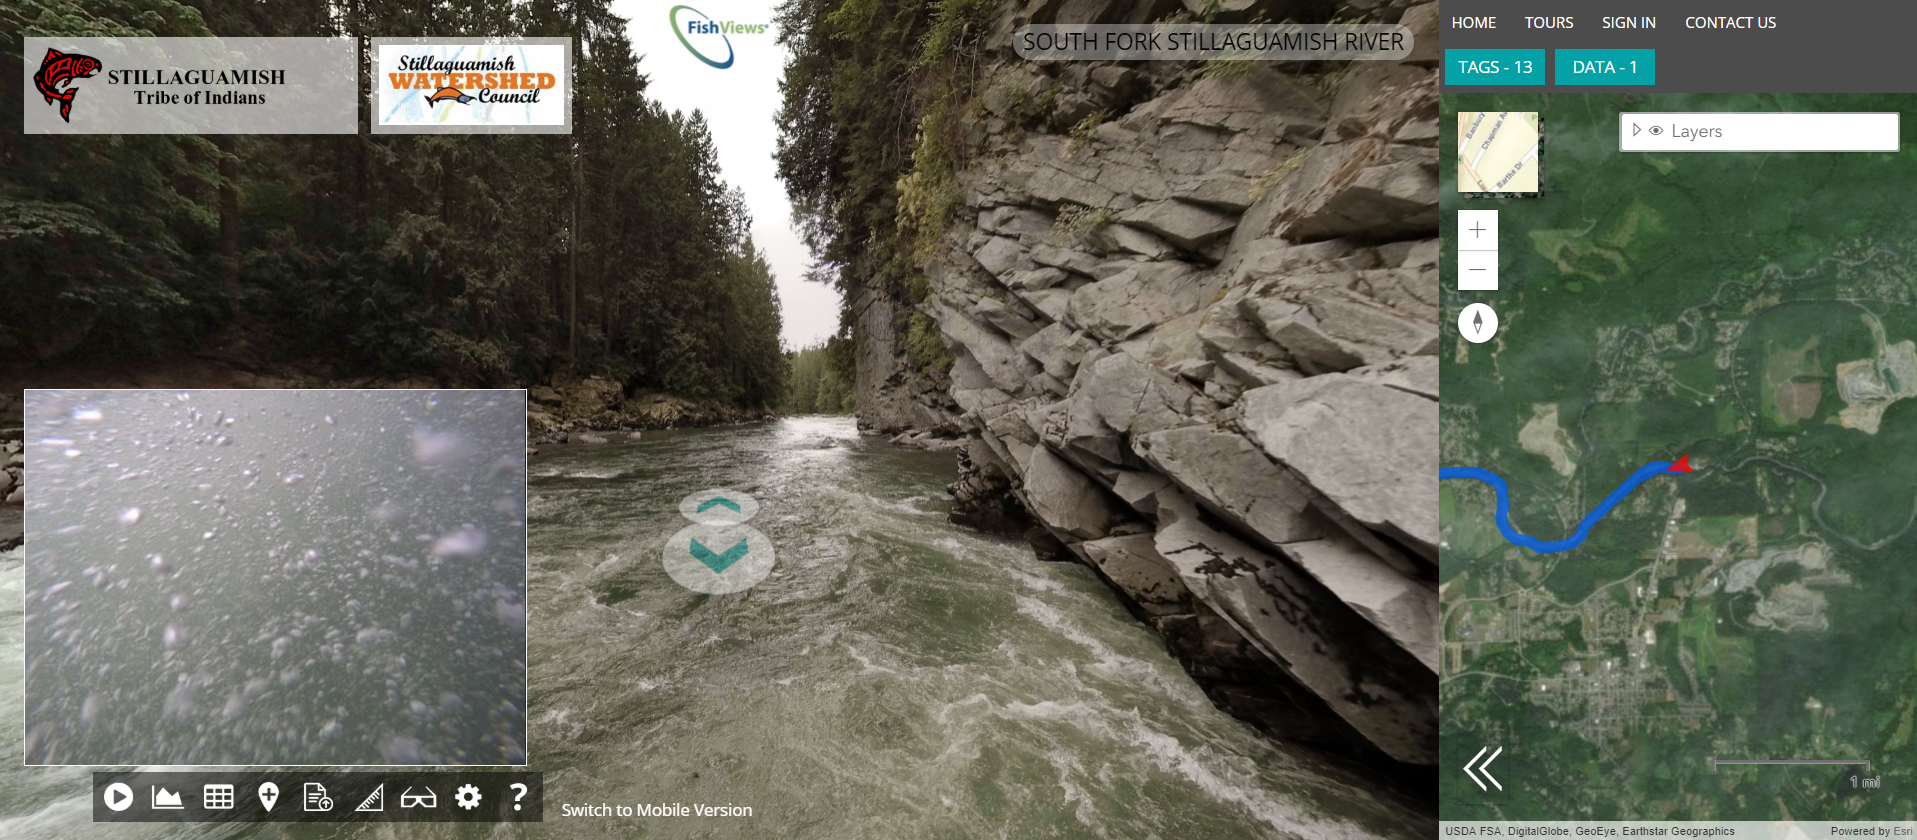 """Virtual Tour: FishViews Stillaguamish River - """"It's like a Google Street View for the Stillaguamish River""""A collaboration between the Stillaguamish Tribe of Indians and Stillaguamish Watershed Council offers a self-guided journey of 82 stream miles including beautiful surface panoramas and underwater views!Click here for the tour!"""